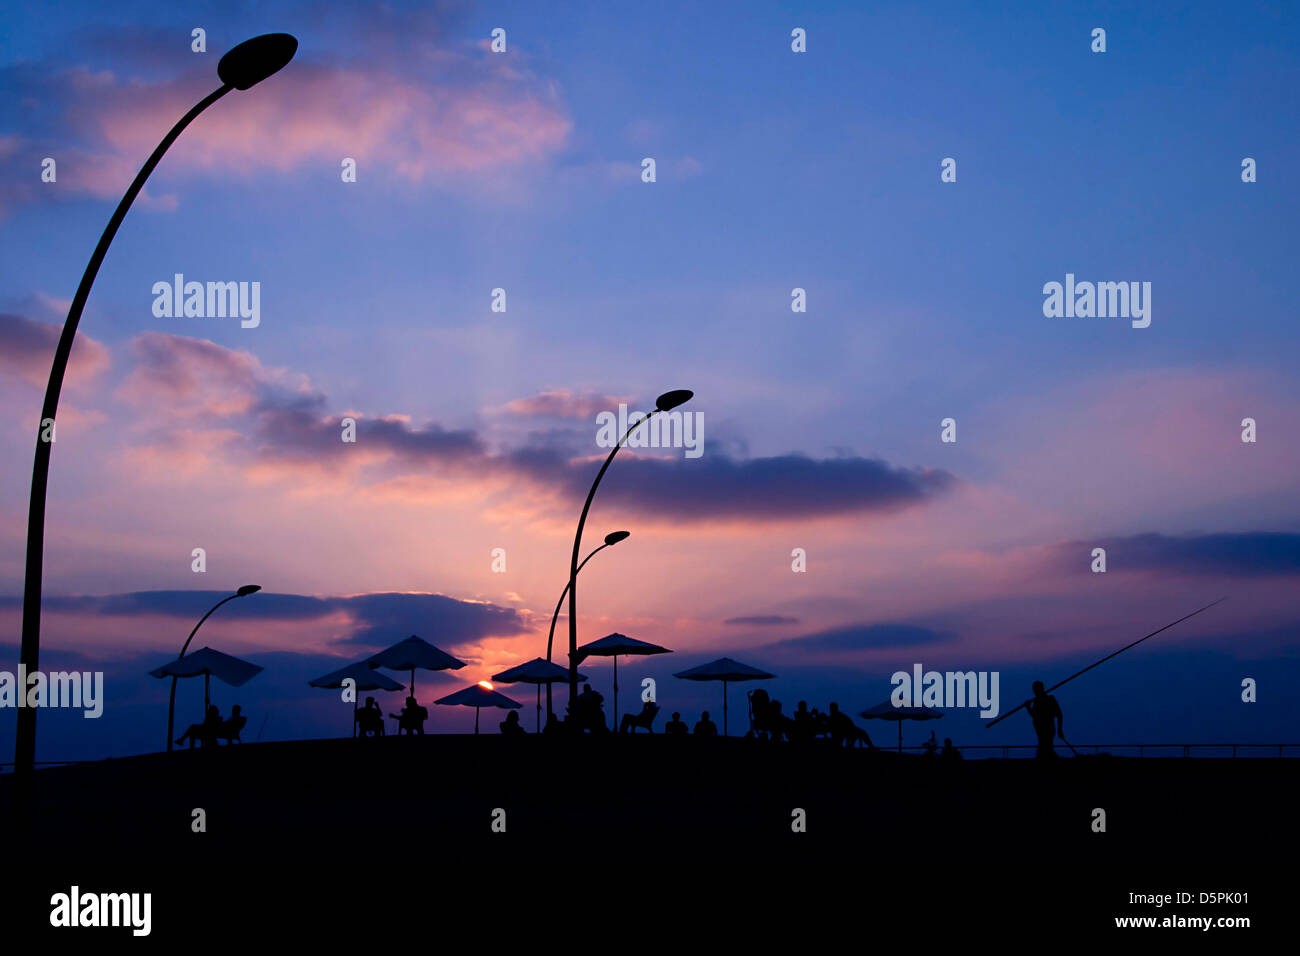 India, Himachal Pradesh, Manali, Vashisht silhouette of people at sunset - Stock Image